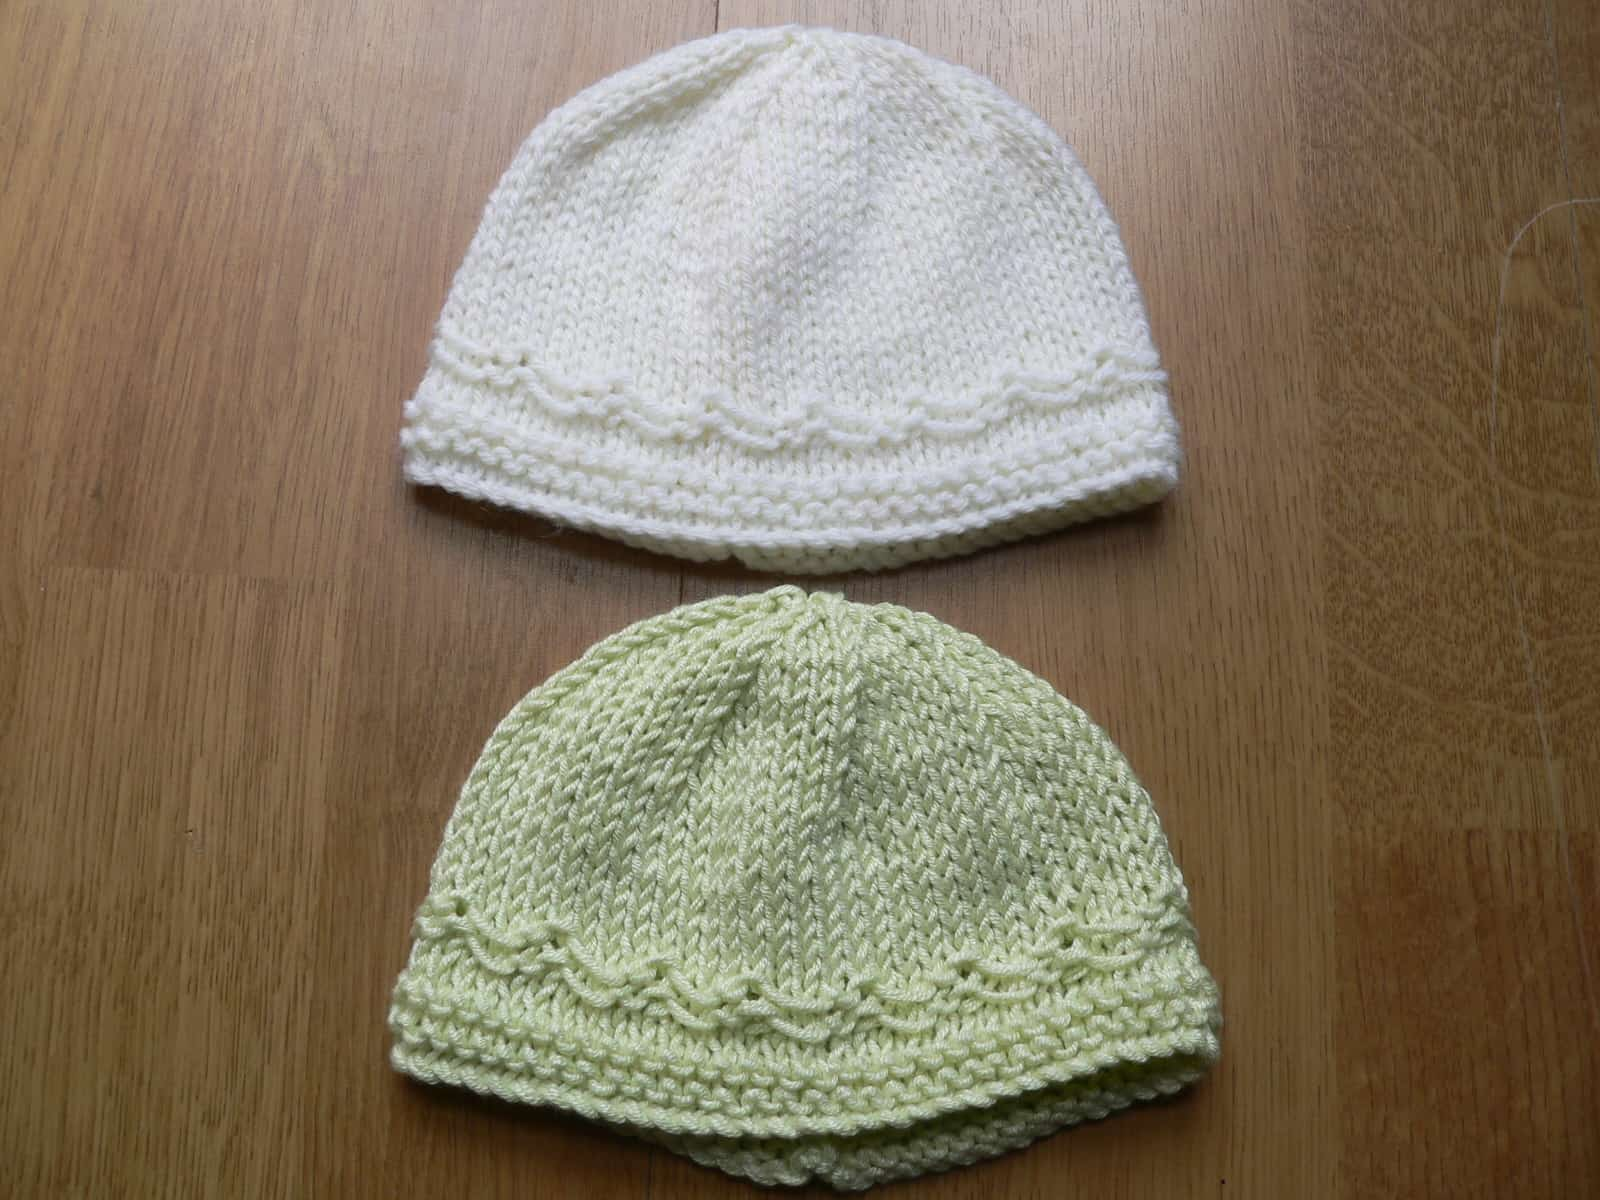 Swung stitches beanies